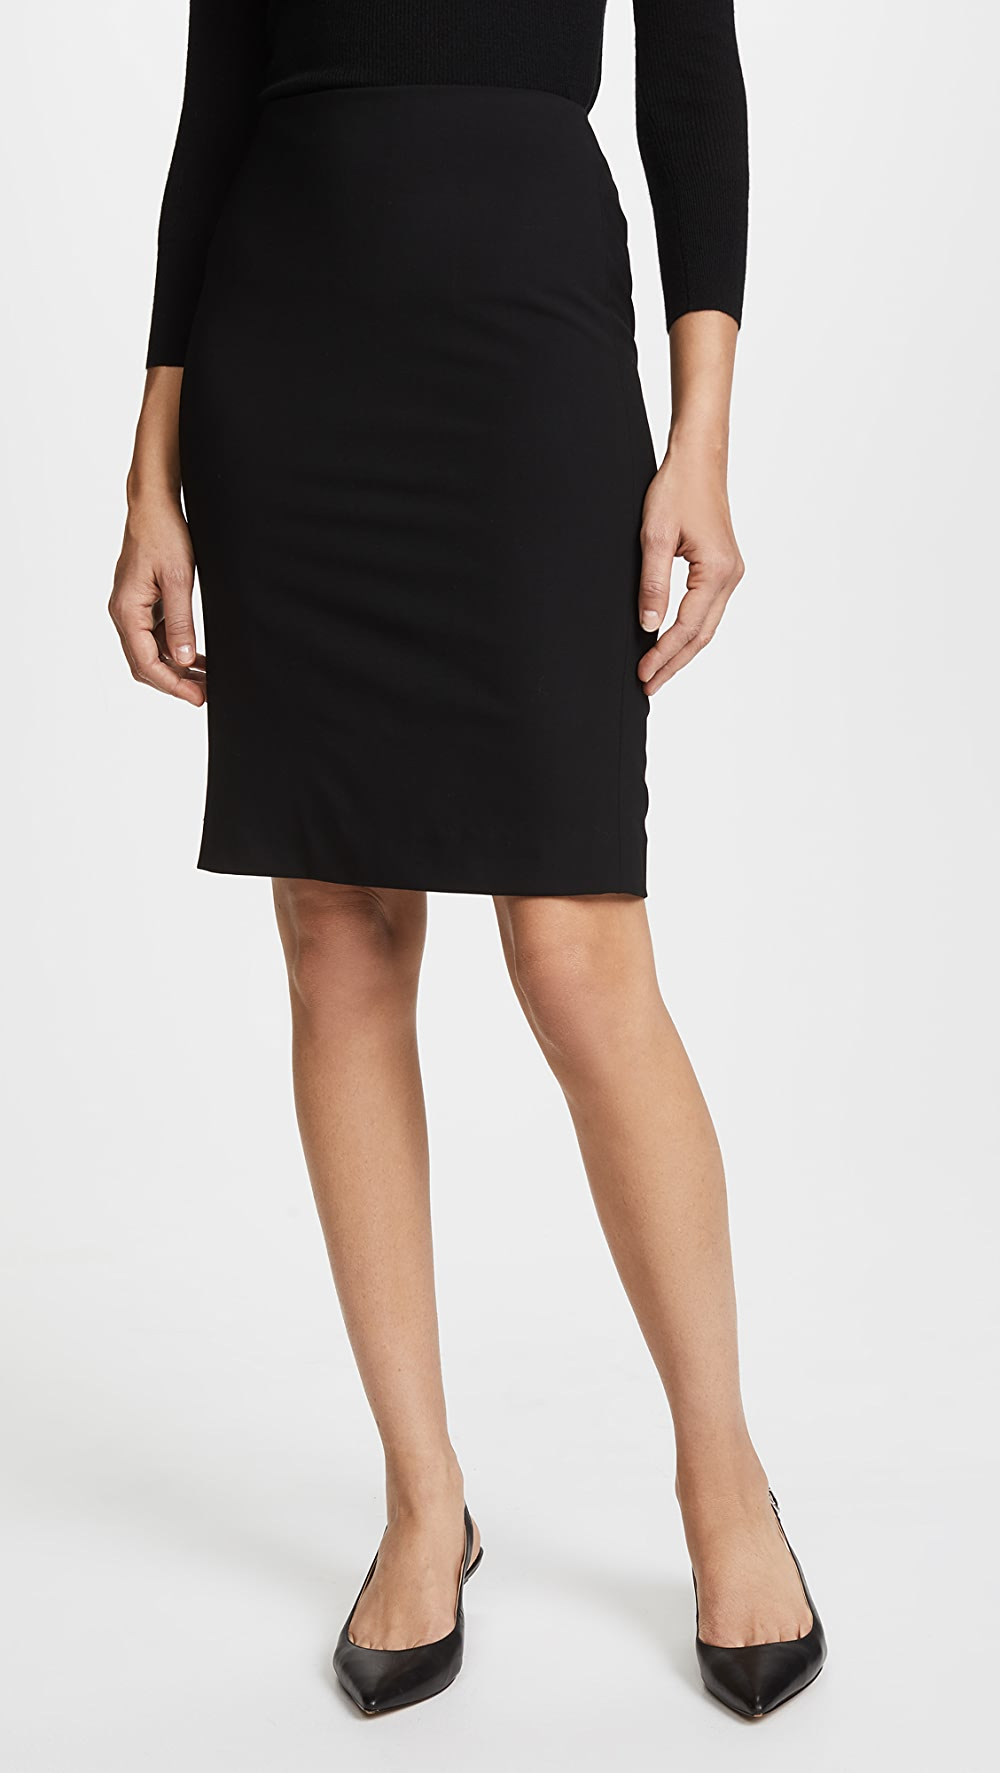 2019 Latest Design Theory - Edition Pencil Skirt Soft And Light